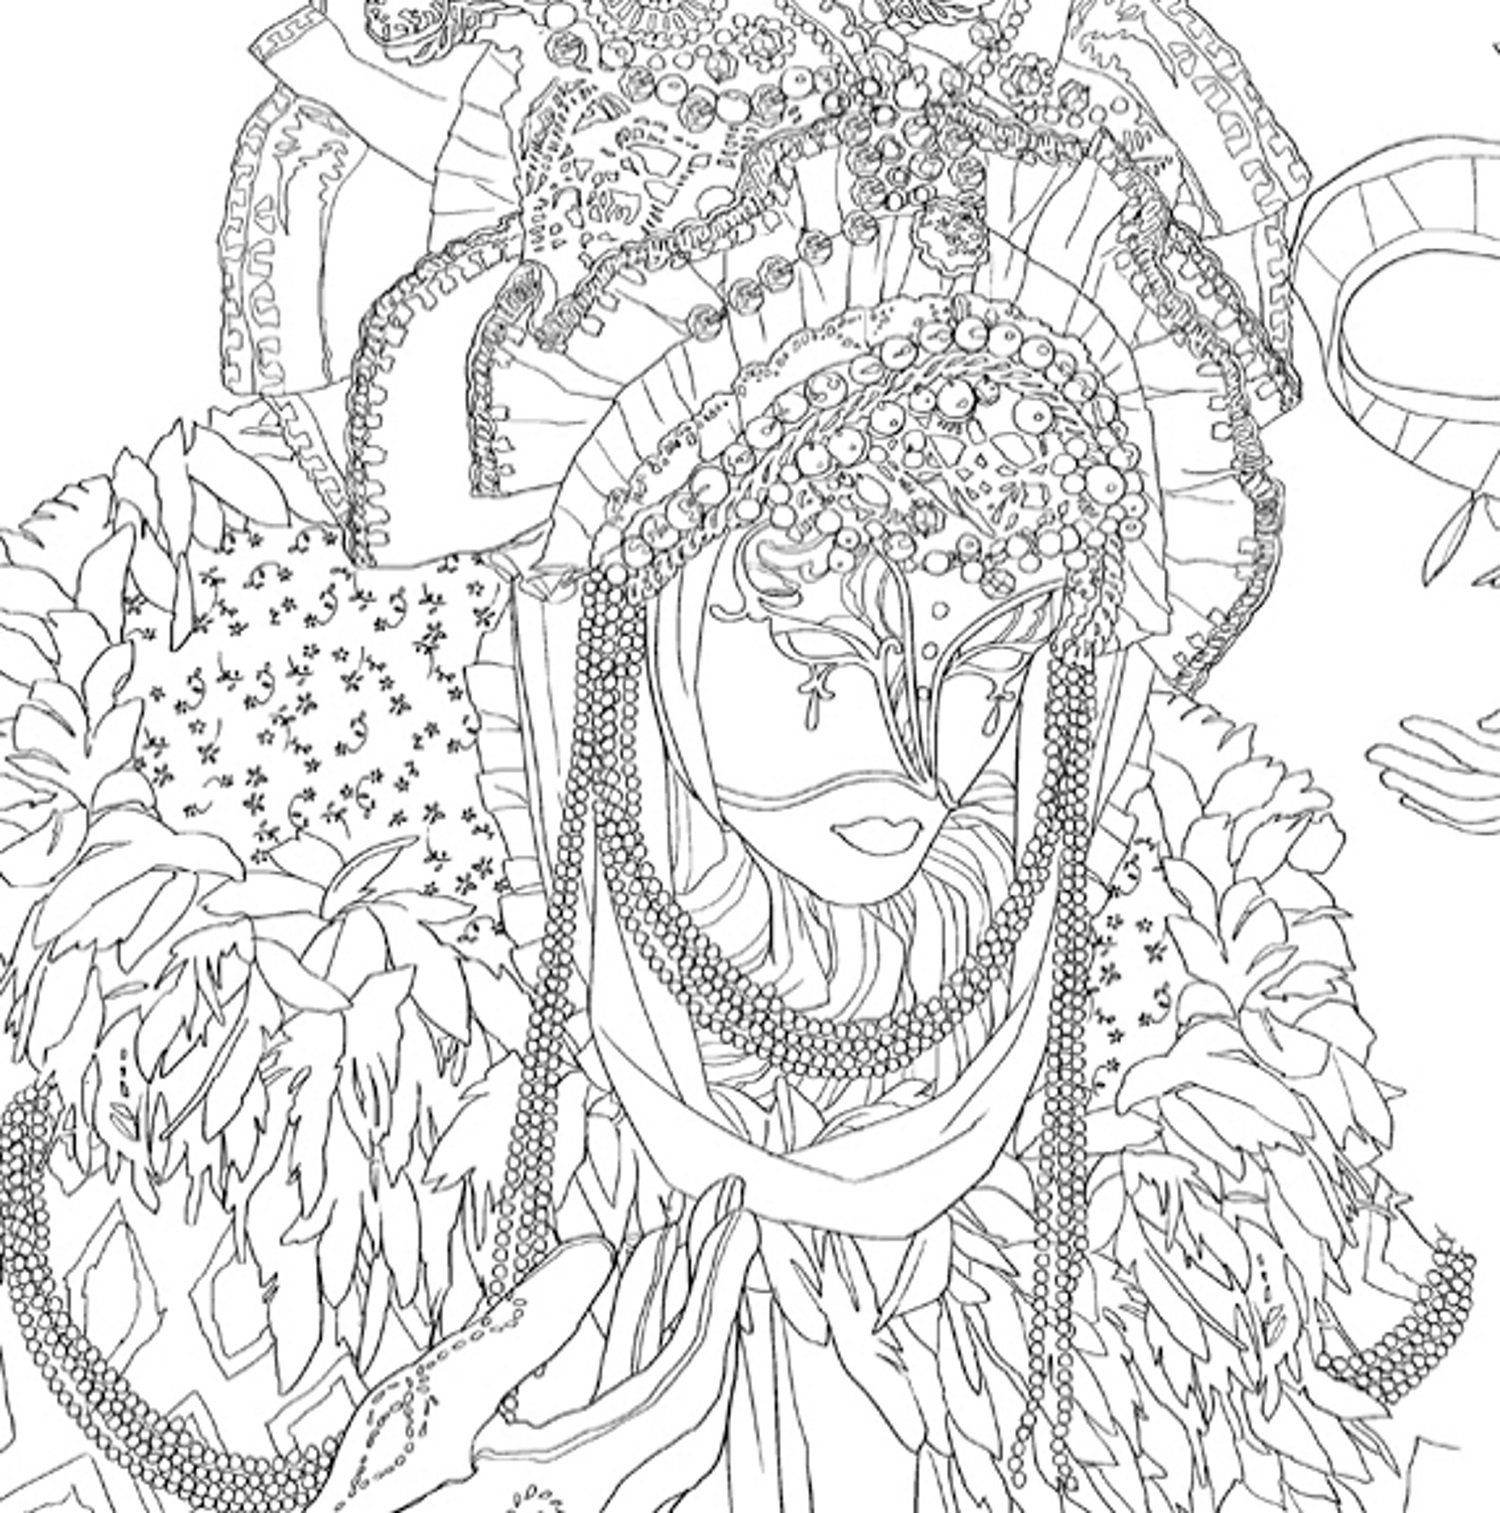 Coloriage coloriage masque pinterest coloriage - Coloriage therapie ...